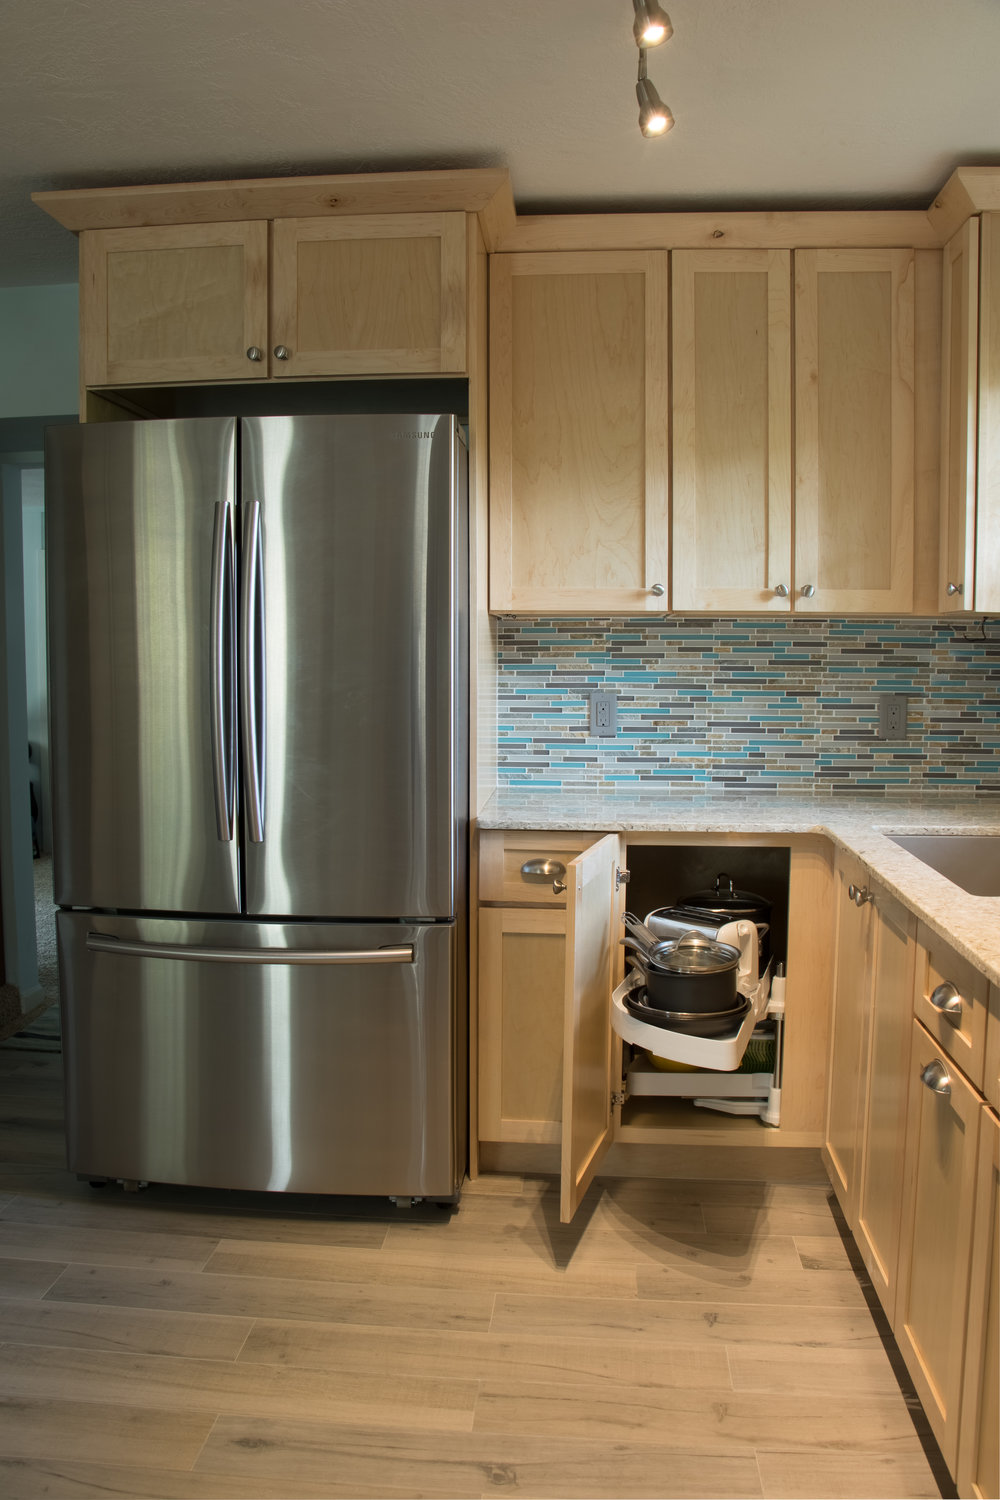 NOTI KITCHEN & BATH114.jpg